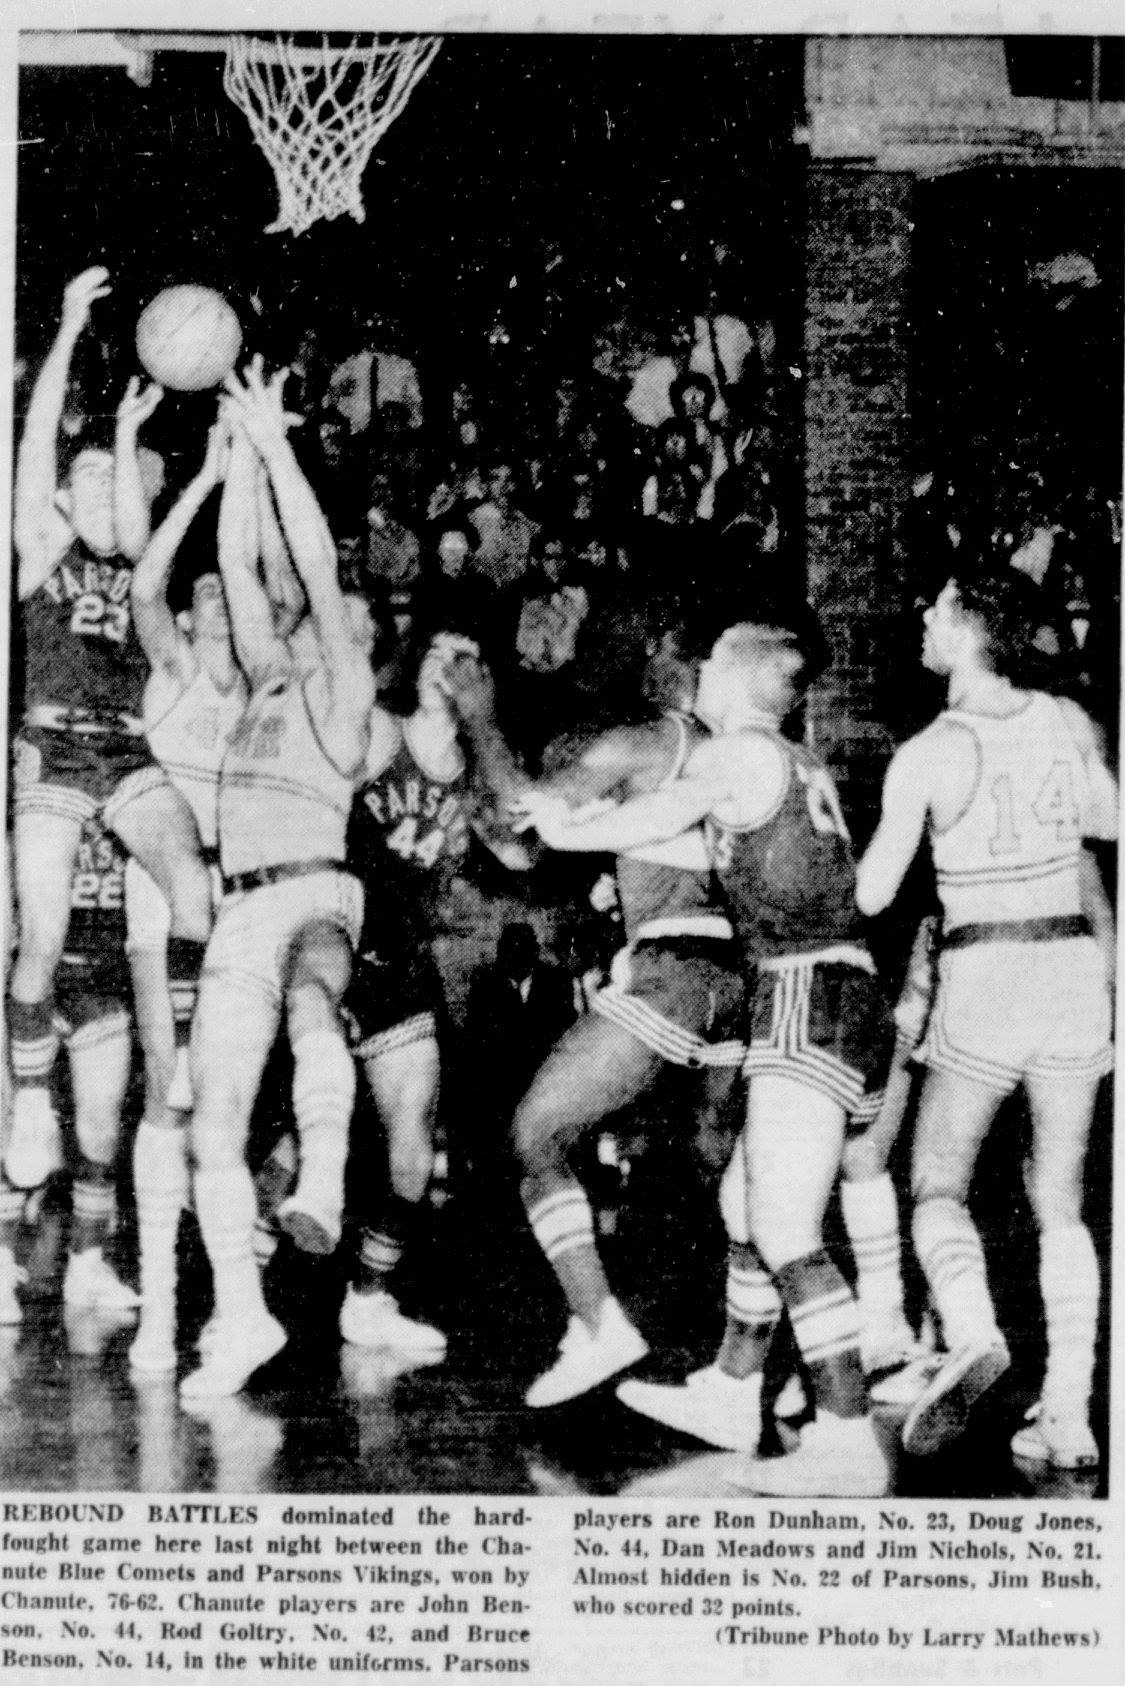 #101 VIKINGS BASKETBALL 1964